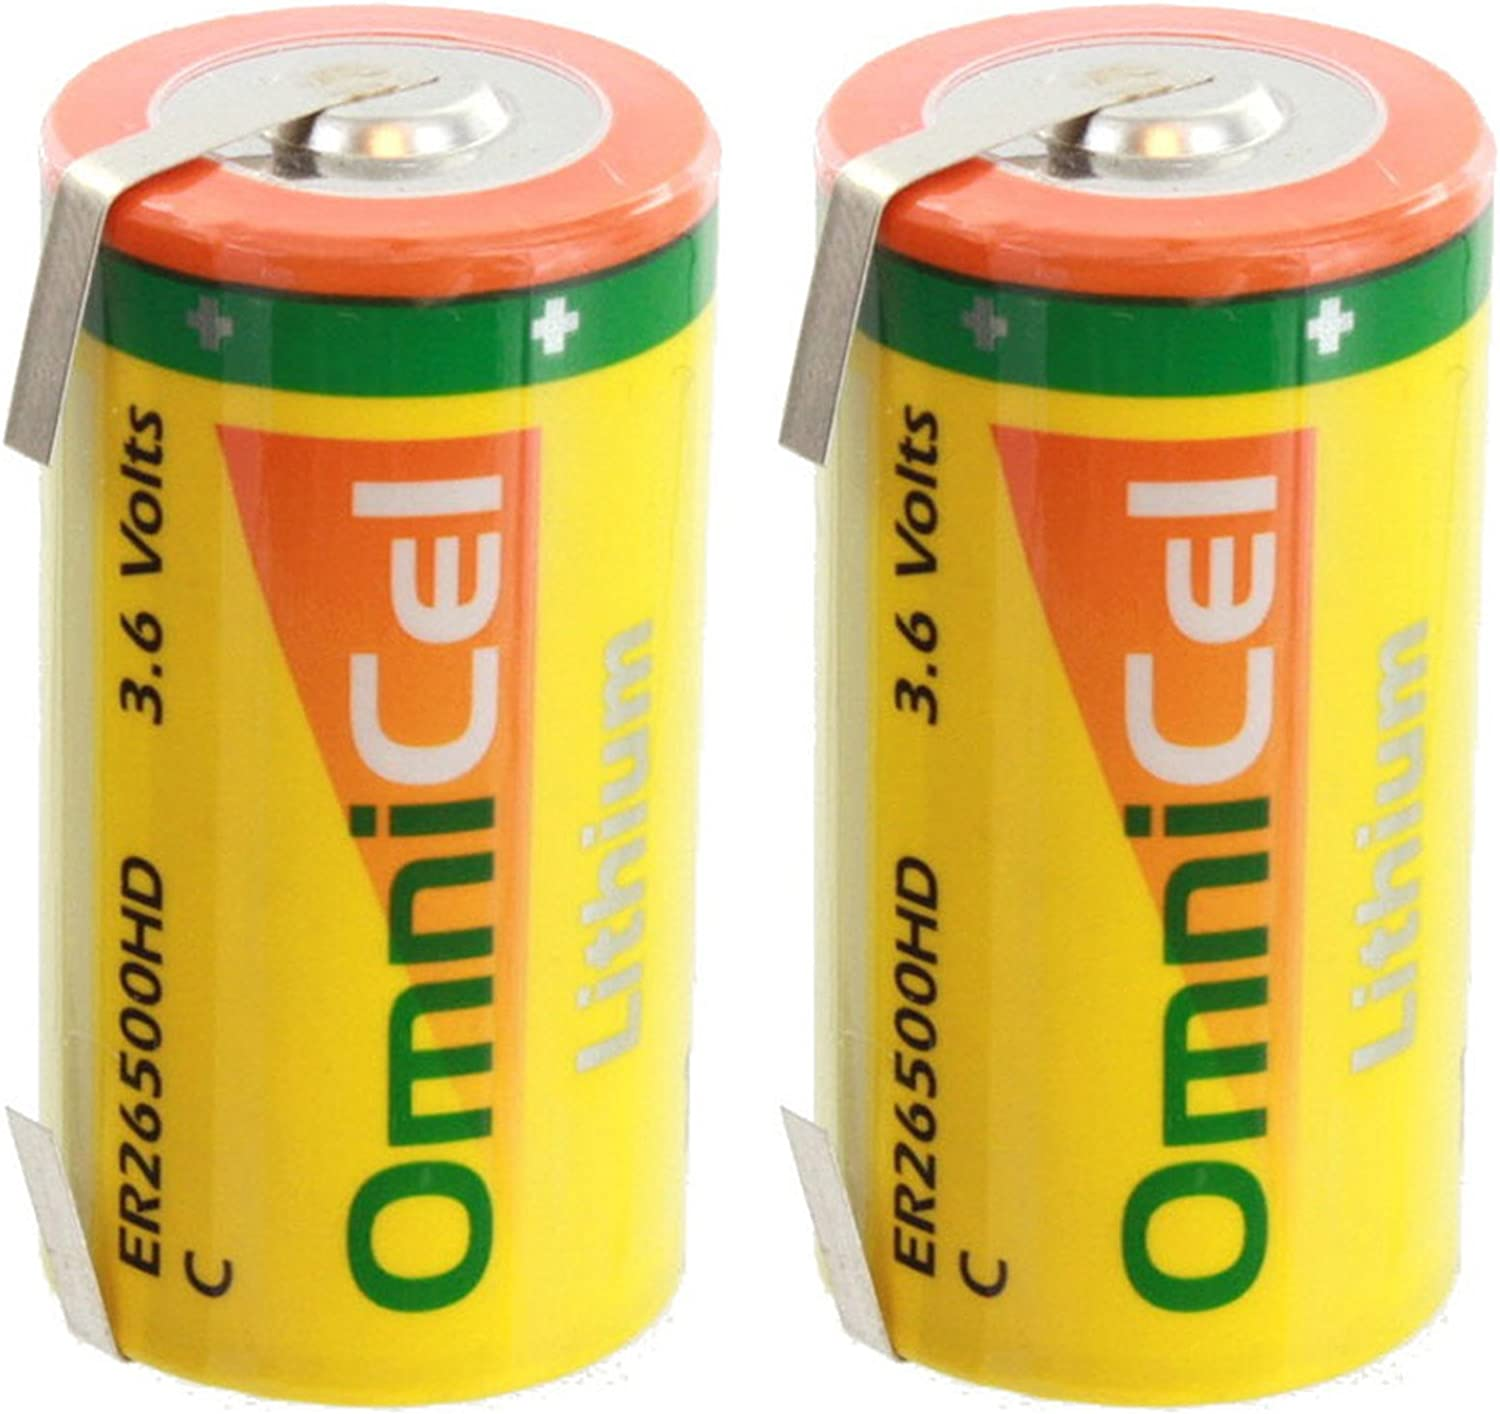 2x OmniCel ER26500HD 3.6V 6.5Ah Size C Lithium Battery with Tabs For Tracking Devices for Hunting Dogs, Carbon Monoxide Detectors, Intrusion Sensors, Invisible Fencing,Smart Utility Metering 71aMwnkvL6L